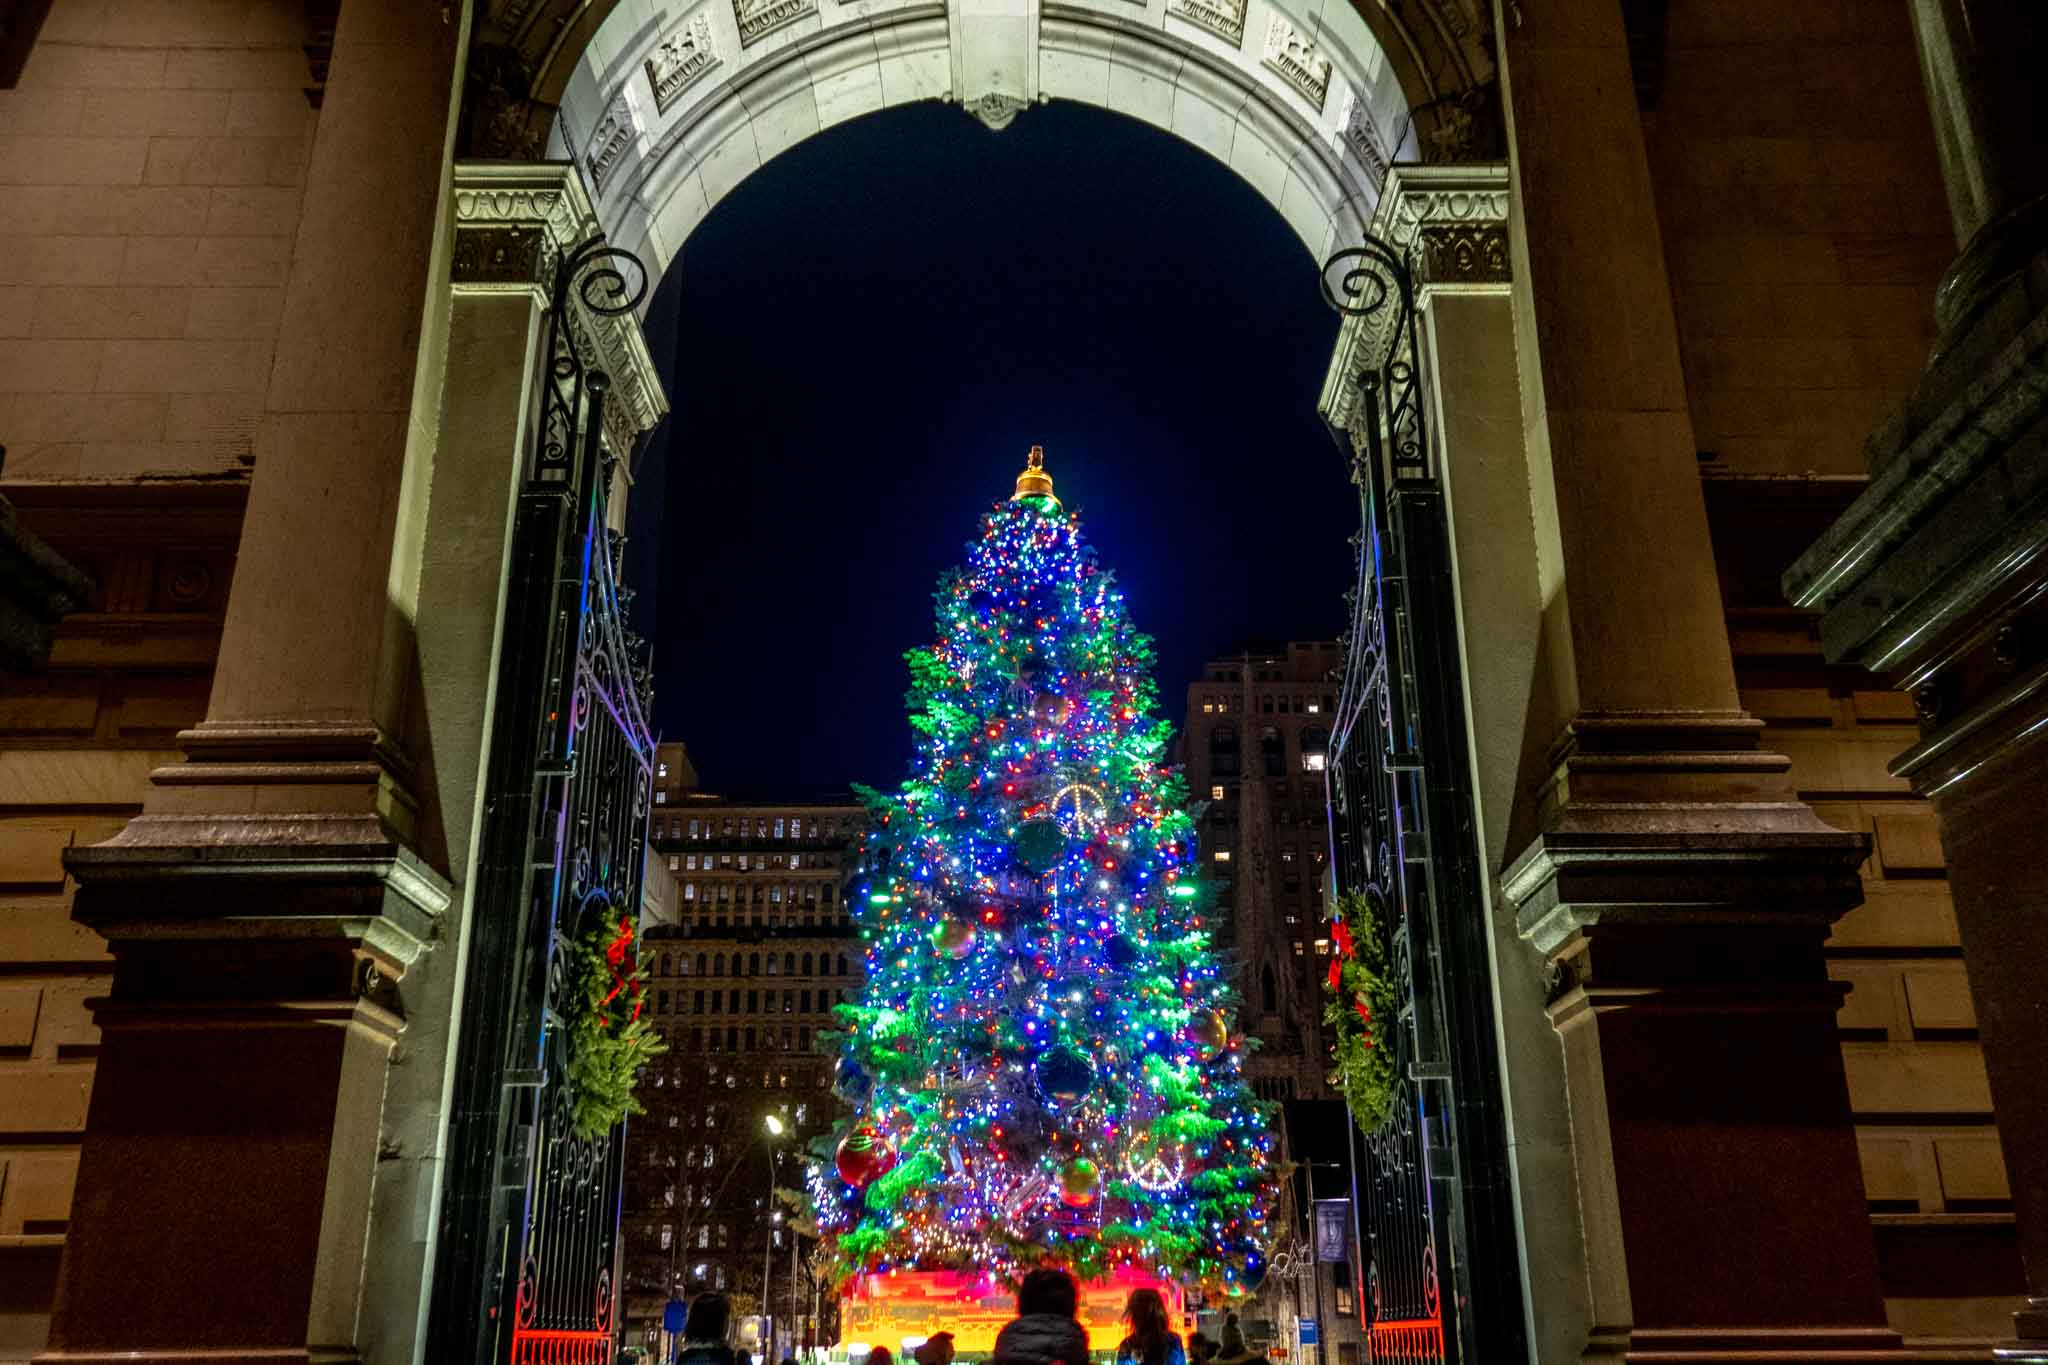 Large Christmas tree covered in lights framed by an arched doorway